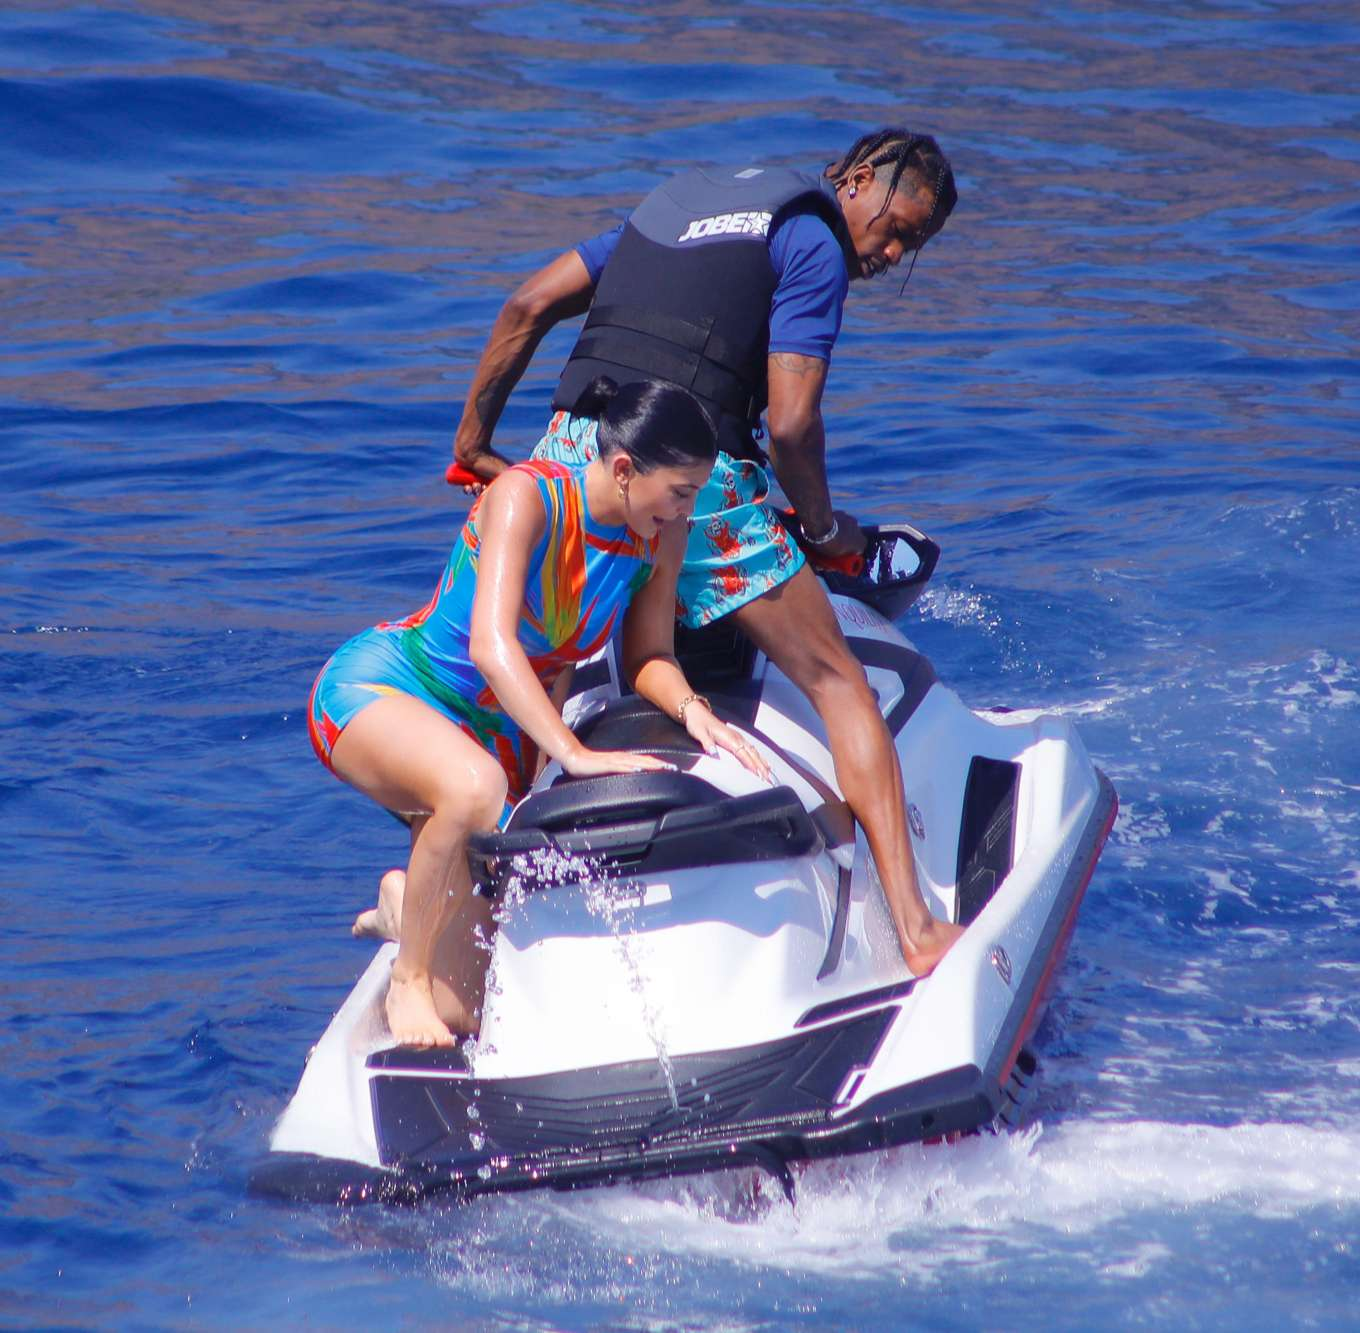 Kylie Jenner and Travis Scott - Spotted on a jet ski in Positano in Italy